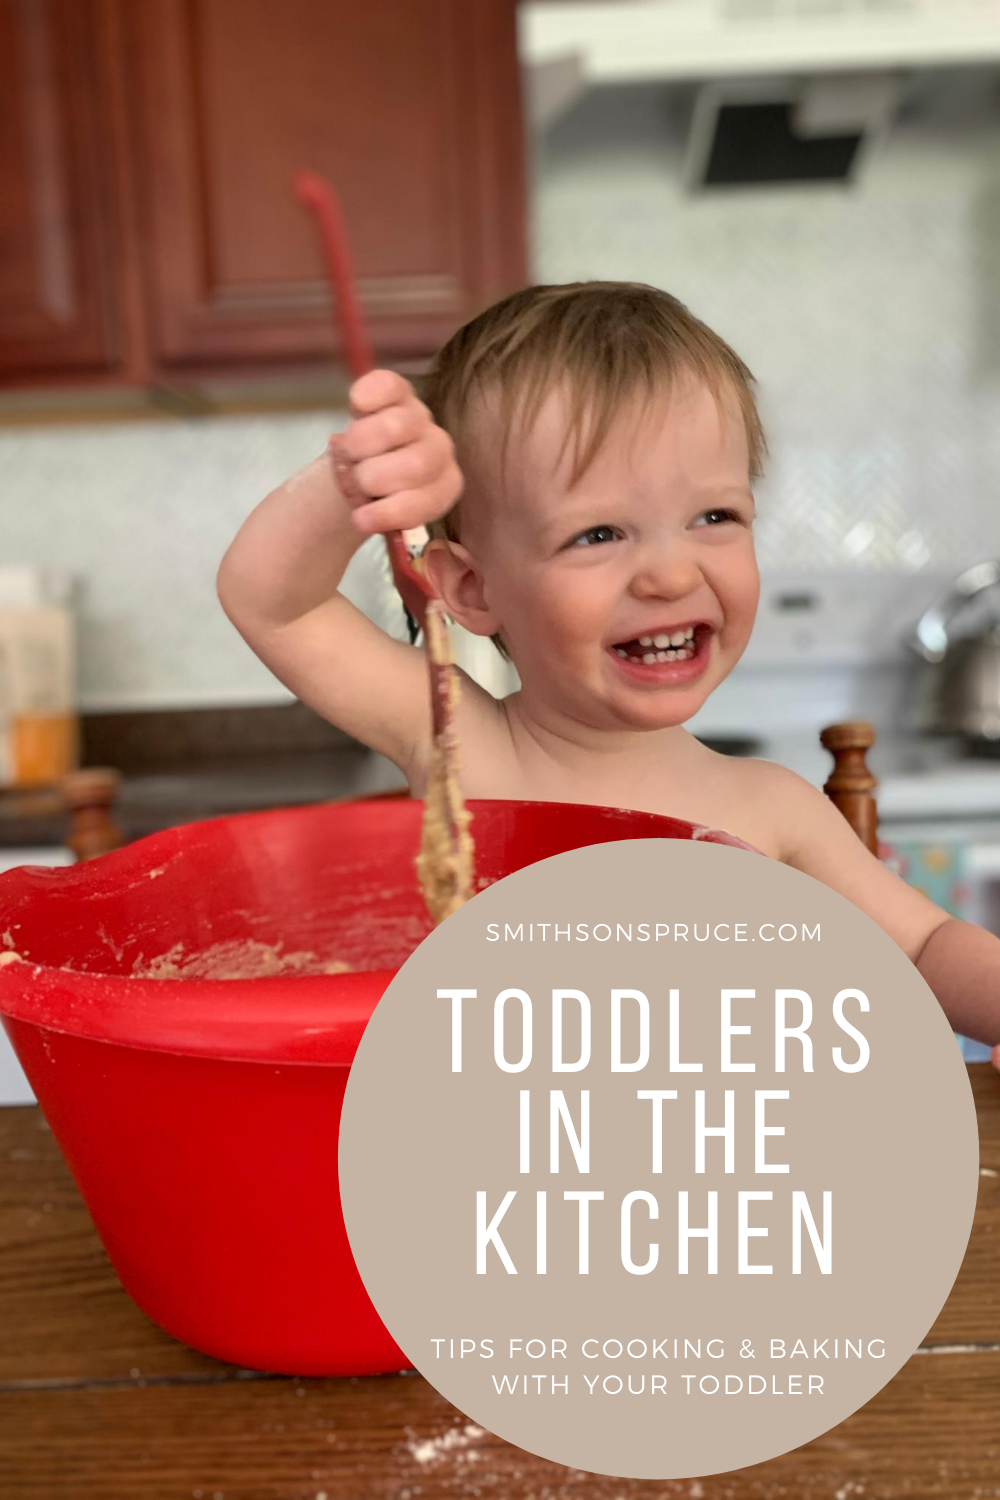 Toddlers in the Kitchen-Tips for Cooking & Baking with Your Toddler